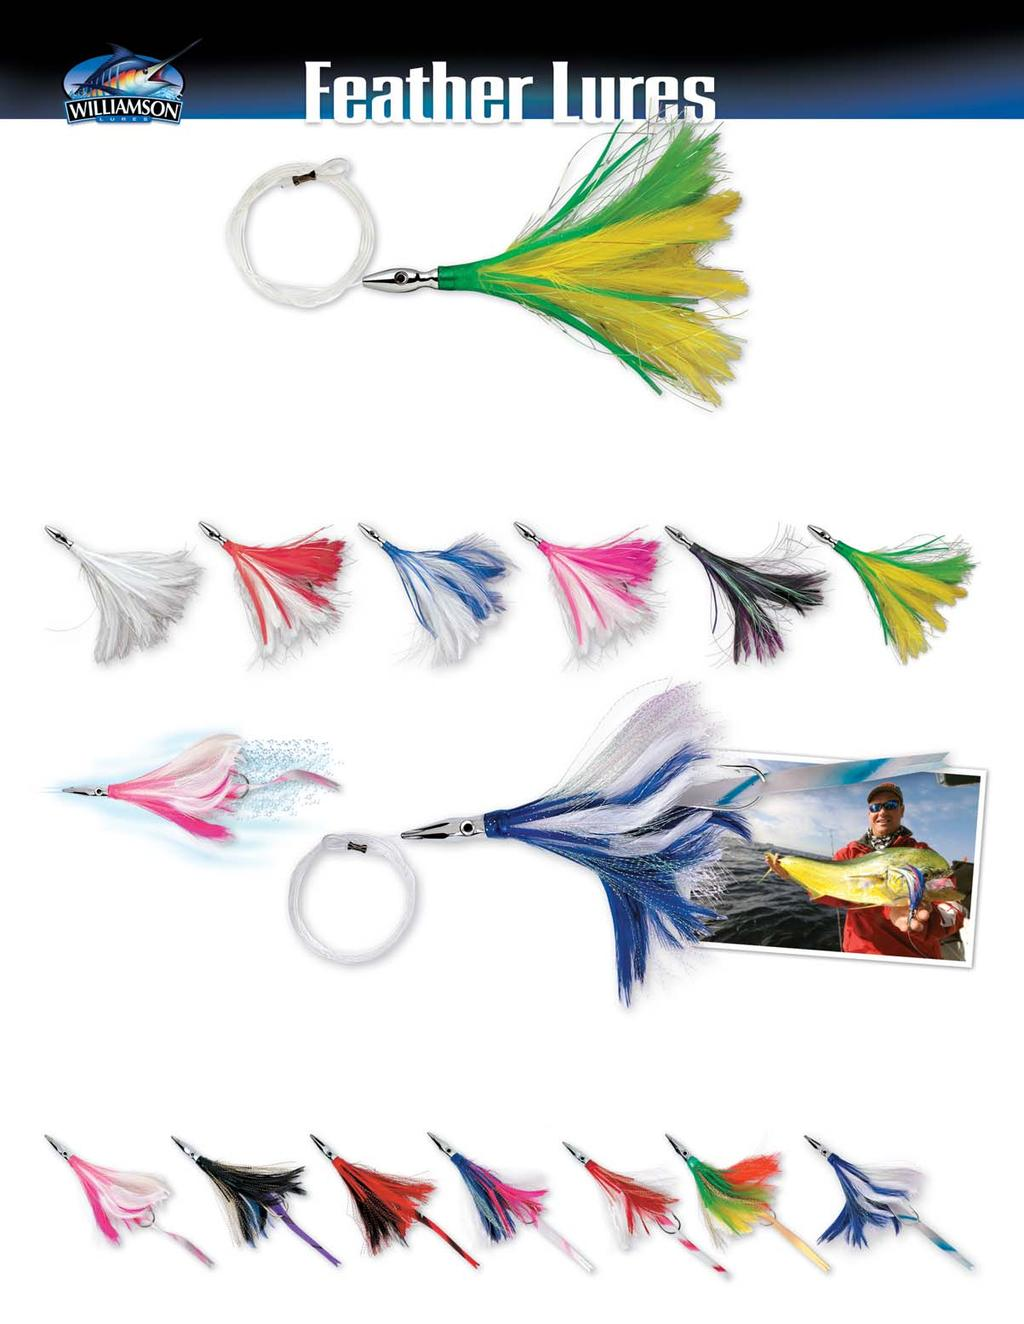 WILLIAMSON PRE-RIGGED SKIRTED LIGHT TROLLING LURE FLASH FEATHER 100mm